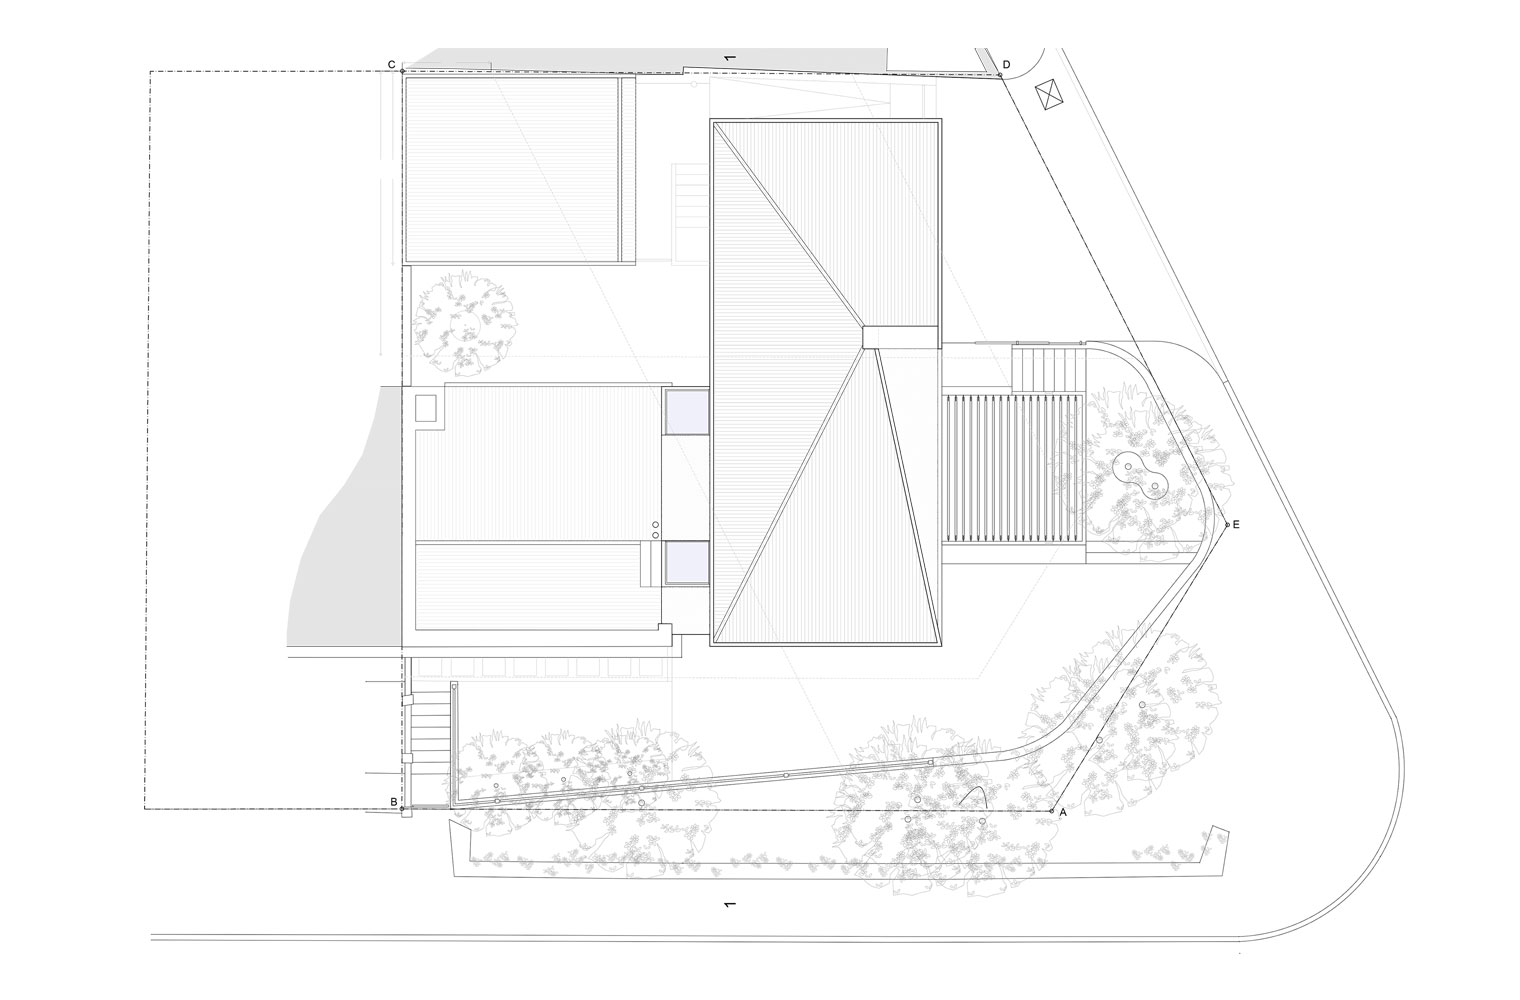 27 Clovelly Avenue - Roof Plan